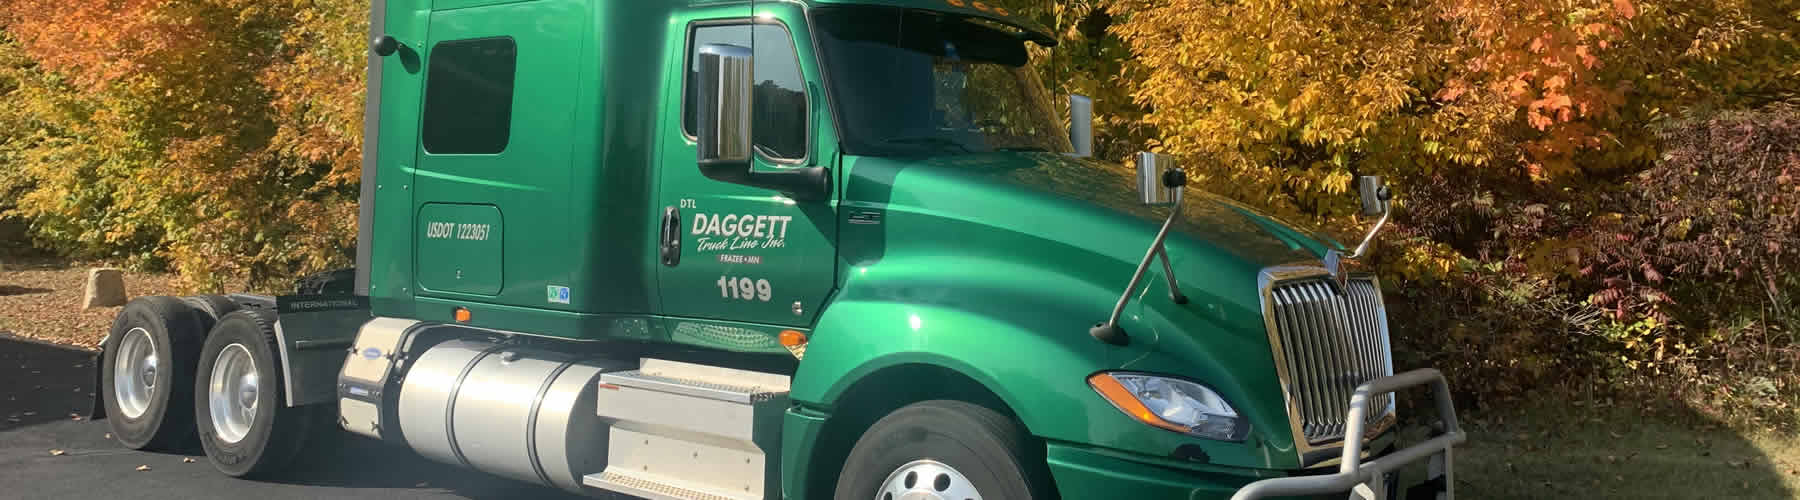 Daggett Truck Line Inc. offers excellent transportation and trucking services.